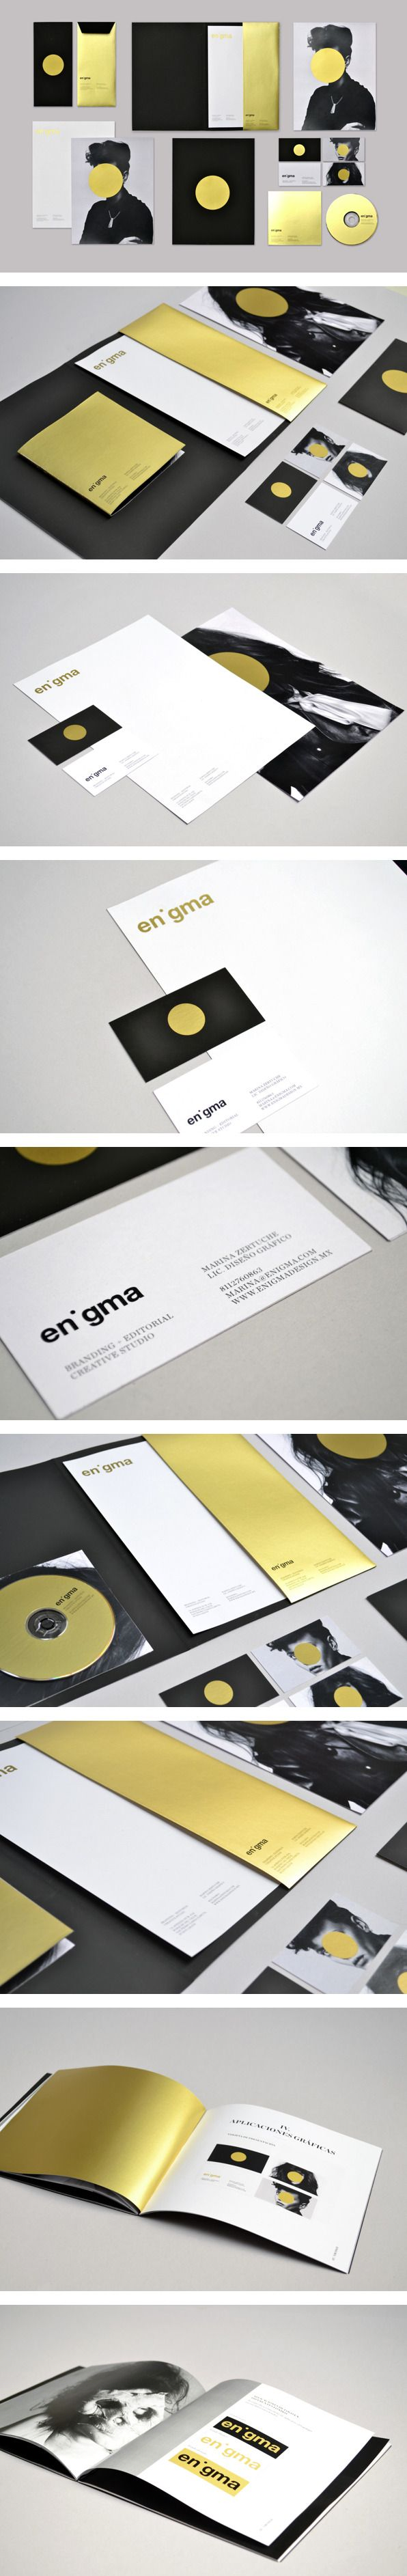 Enigma Personal Identity by Marina Zertuche | #stationary #corporate #design #corporatedesign #identity #branding #marketing < repinned by www.BlickeDeeler.de | Take a look at www.LogoGestaltung-Hamburg.de